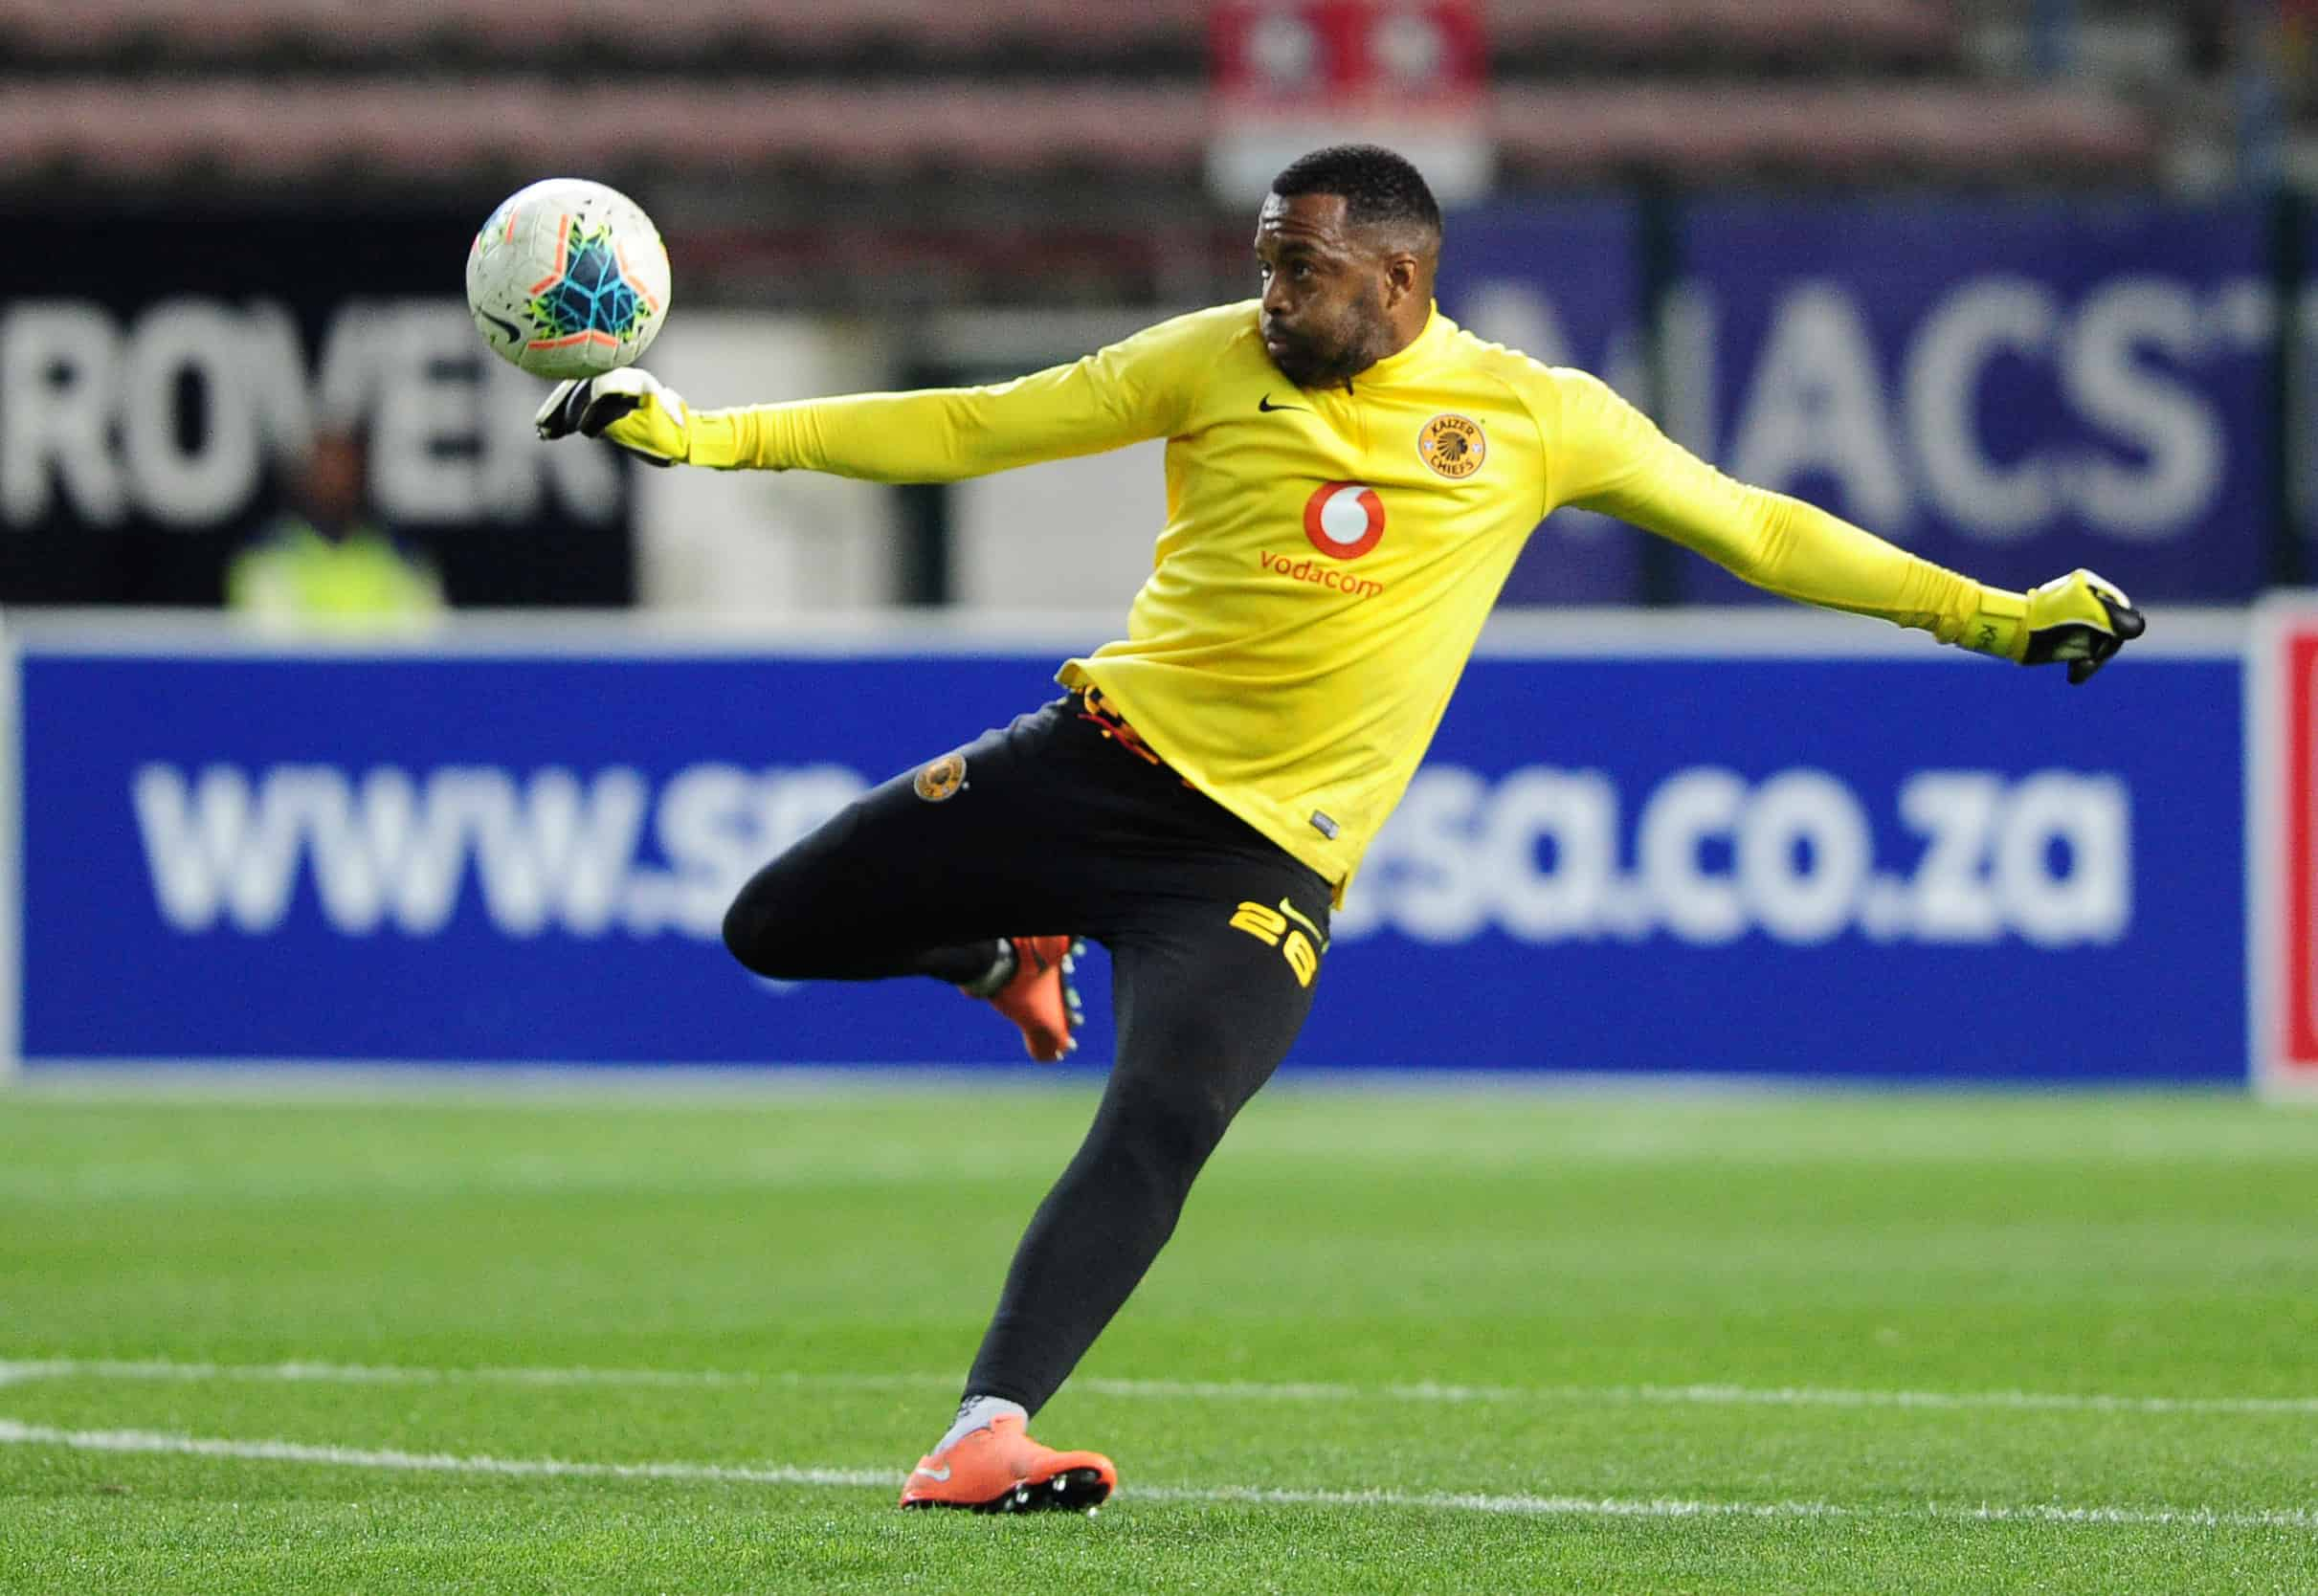 Chances are high for Itumeleng Khune to start the derby